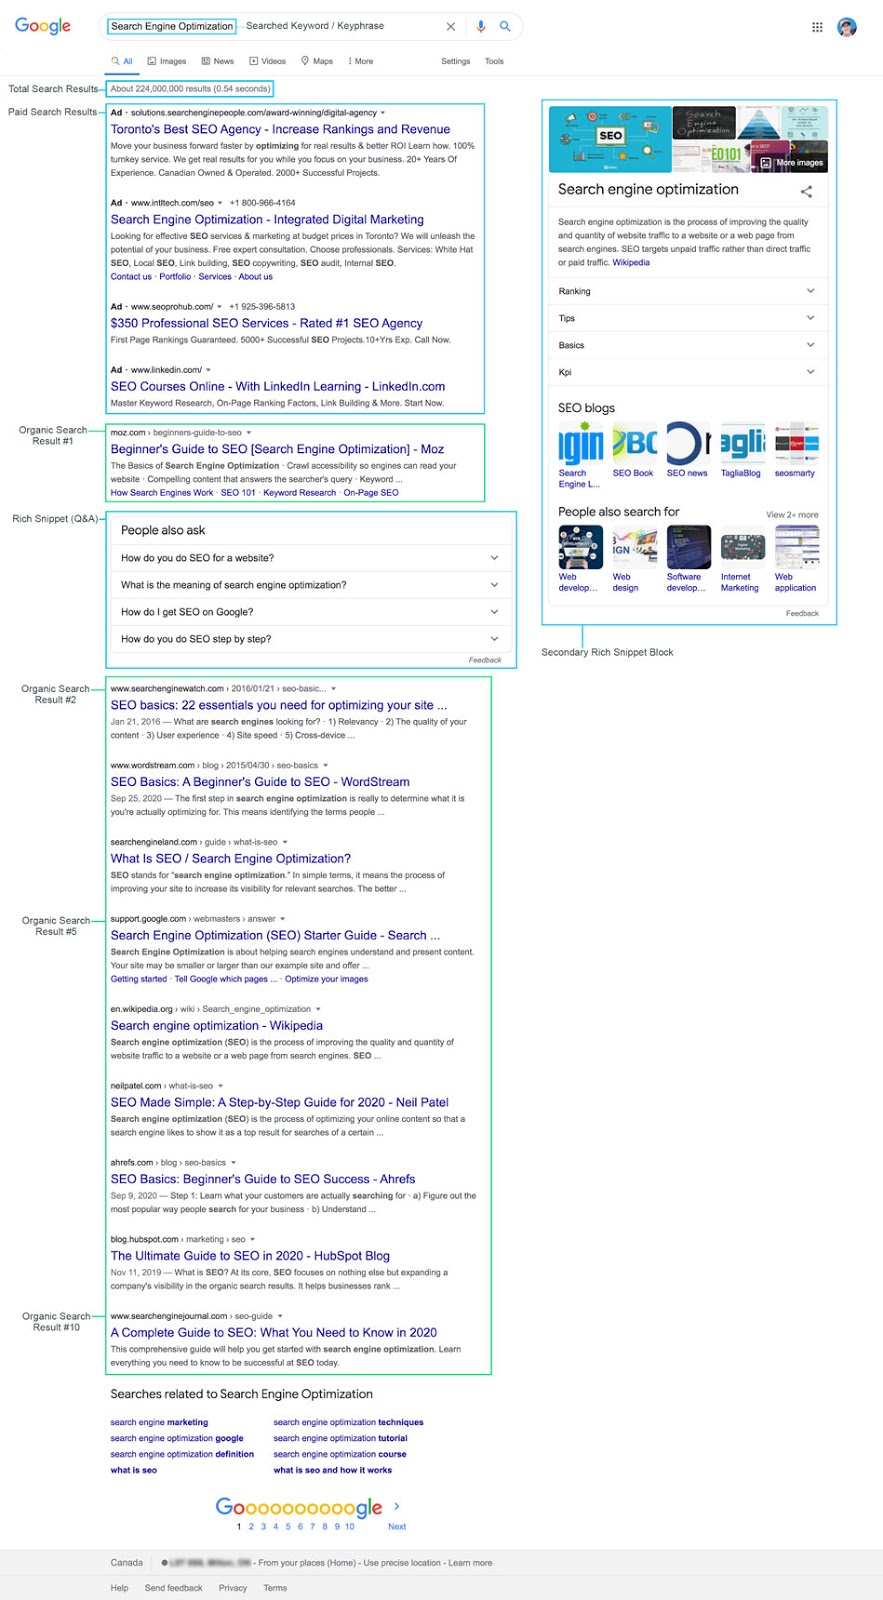 Anatomy of a Search Engine Results Page (SERP)